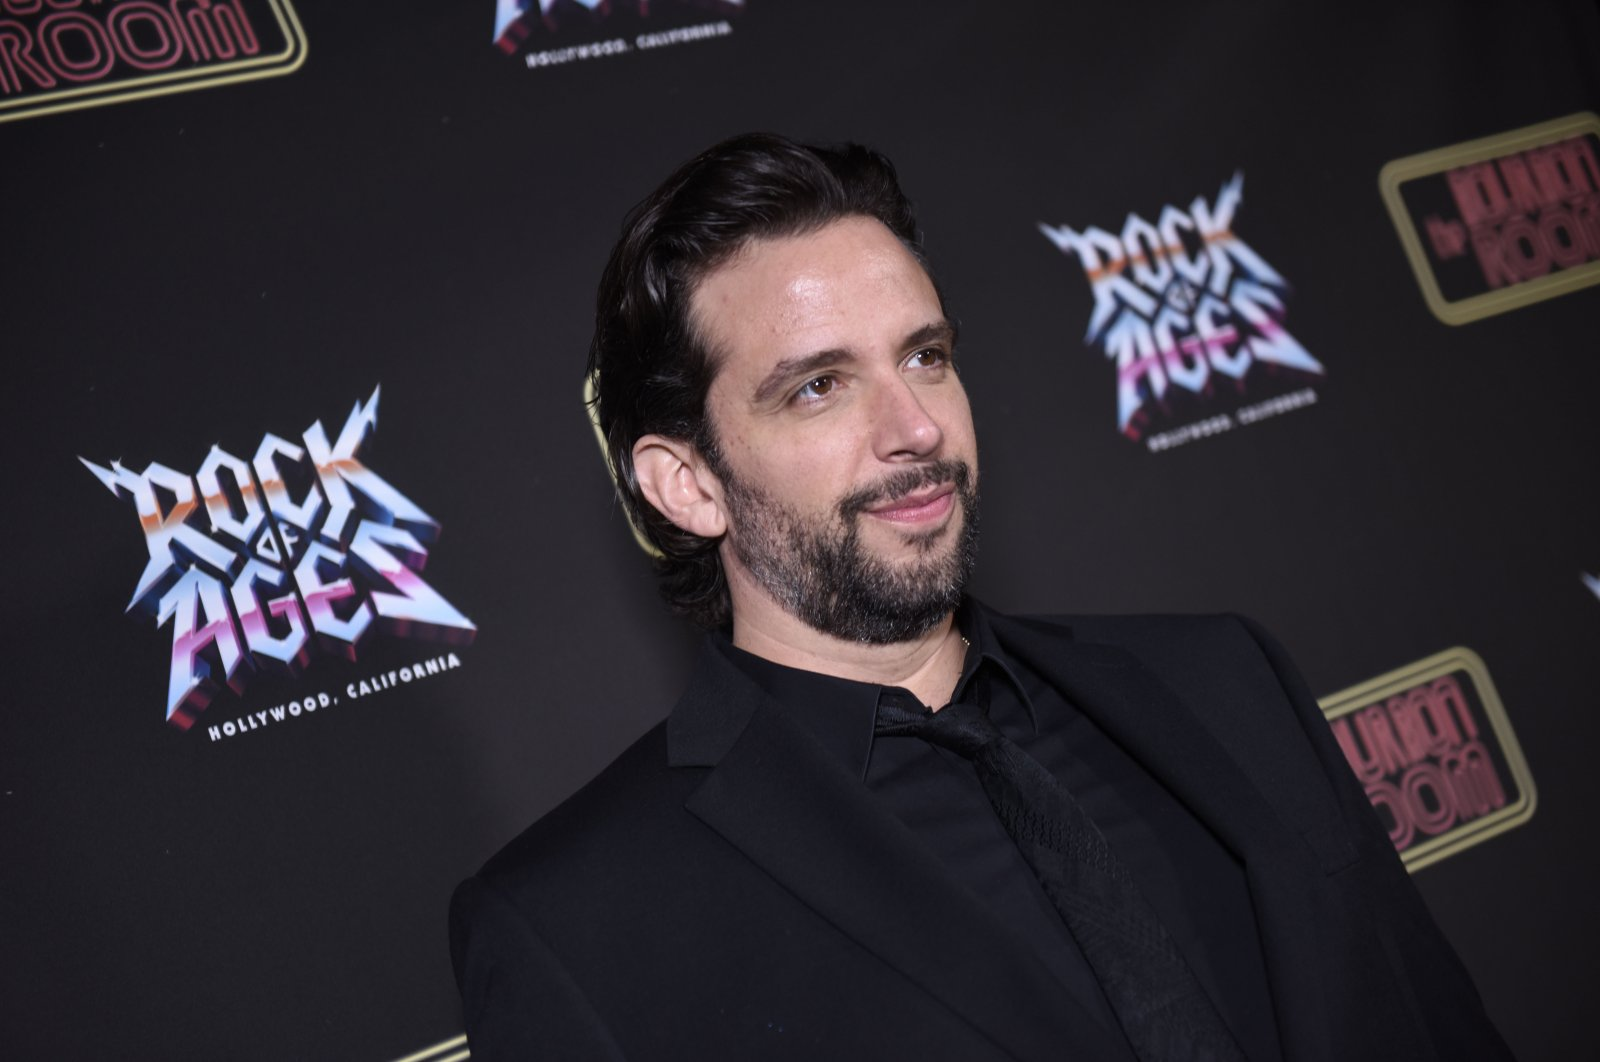 In this file photo Nick Cordero attends Rock of Ages Opening Night at the Bourbon Room in Hollywood, California on Jan. 15, 2020. (AFP Photo)